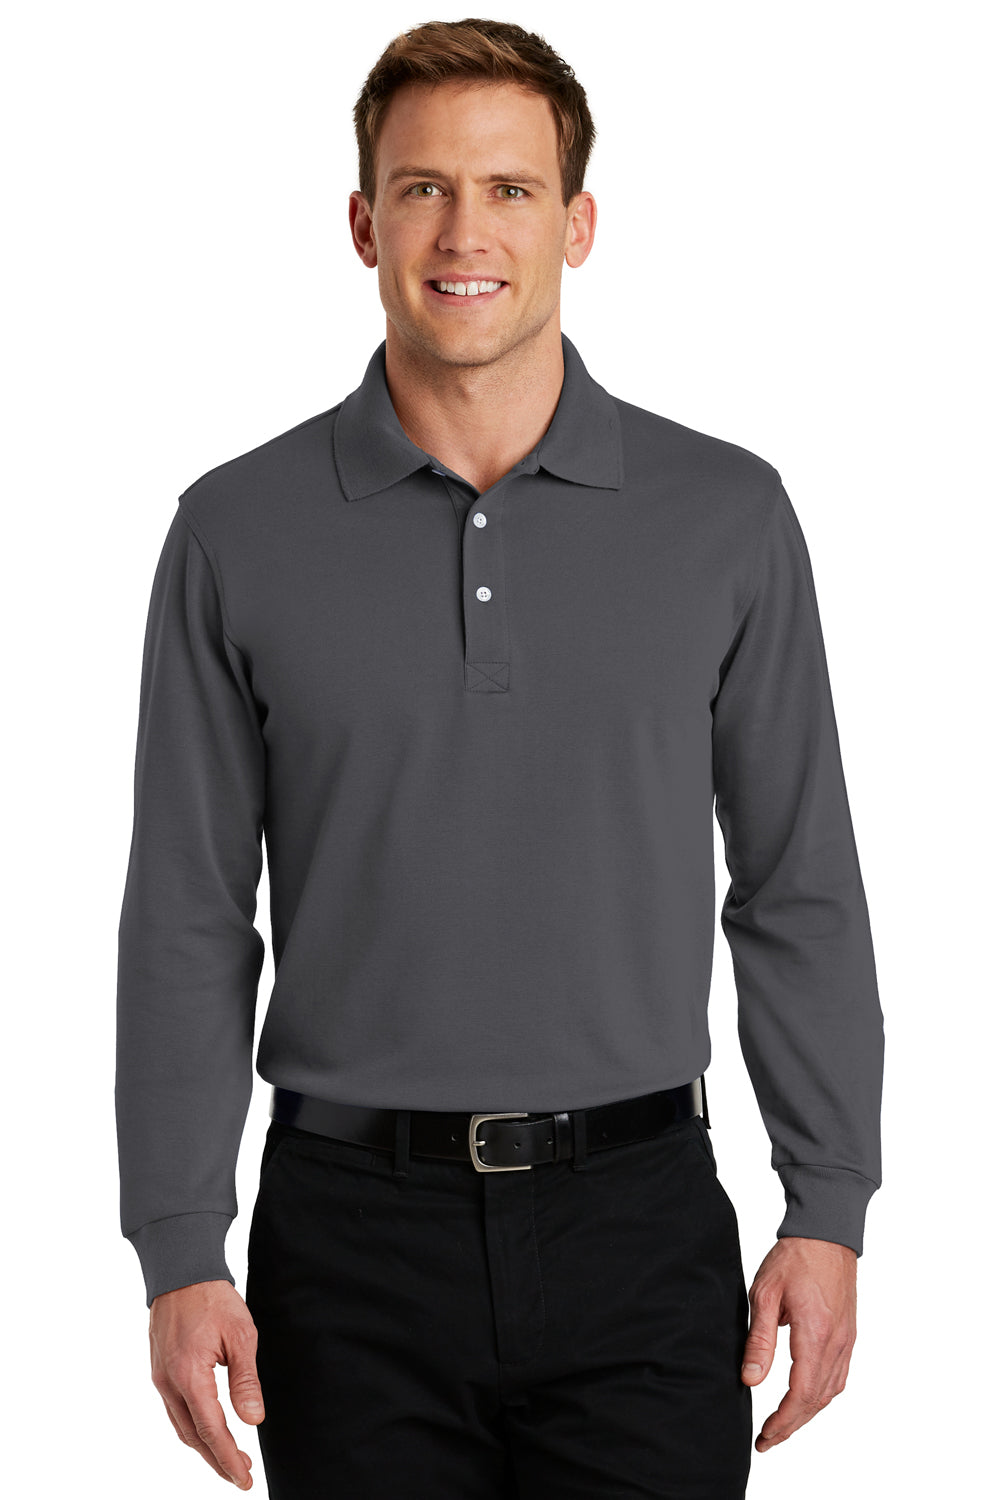 Port Authority K455LS Mens Rapid Dry Moisture Wicking Long Sleeve Polo Shirt Charcoal Grey Front